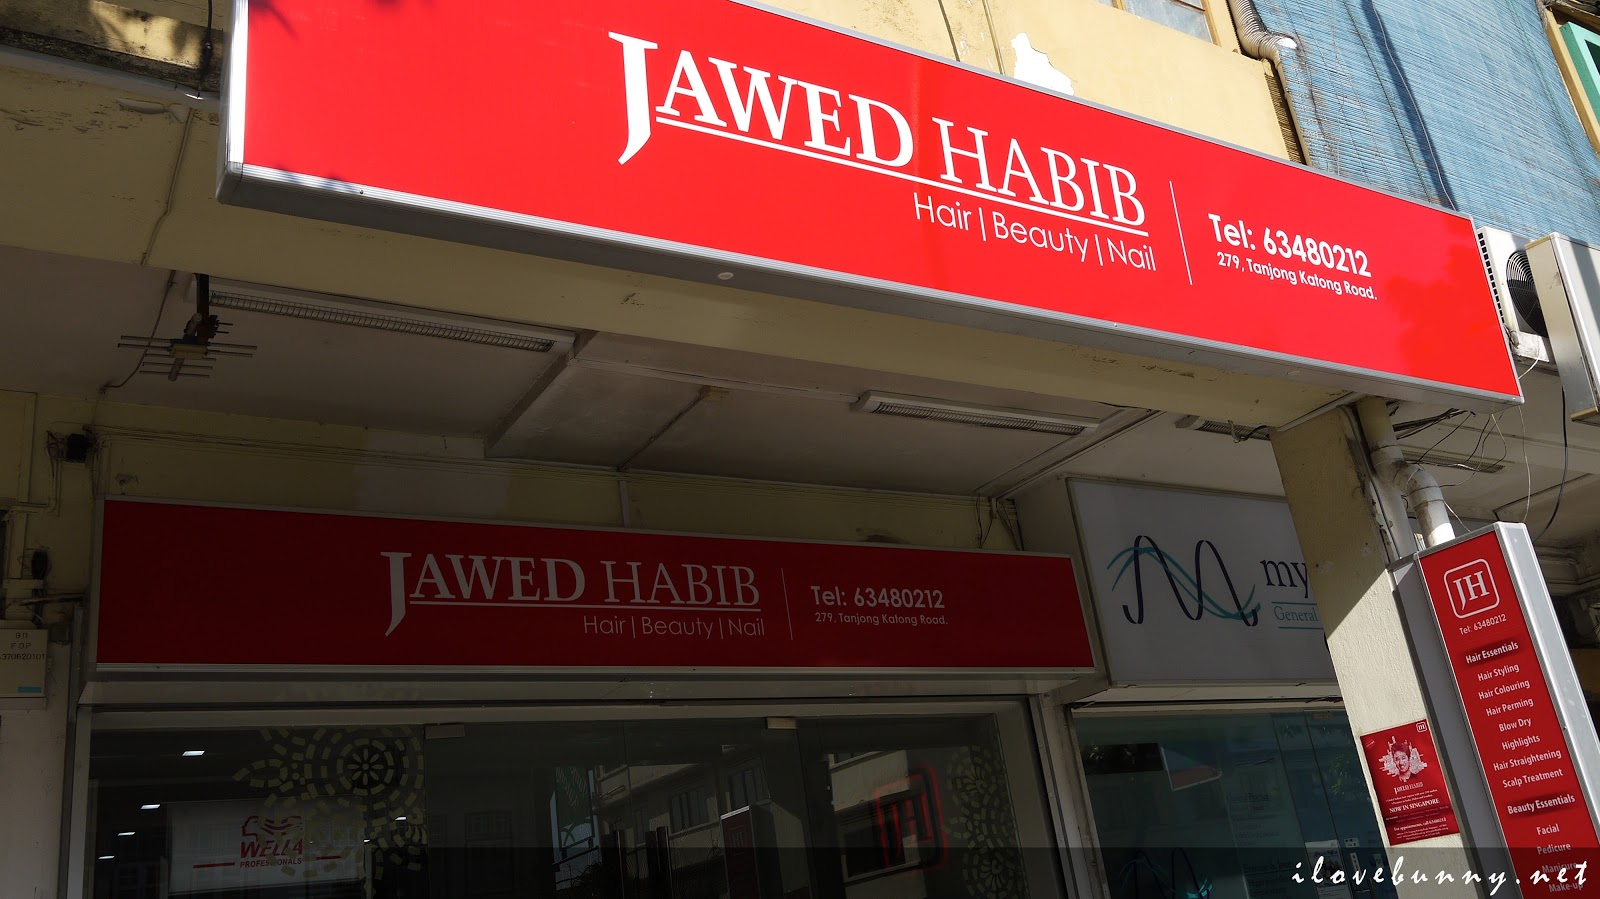 Salon Review Jawed Habib Hair Salon I Love Bunny